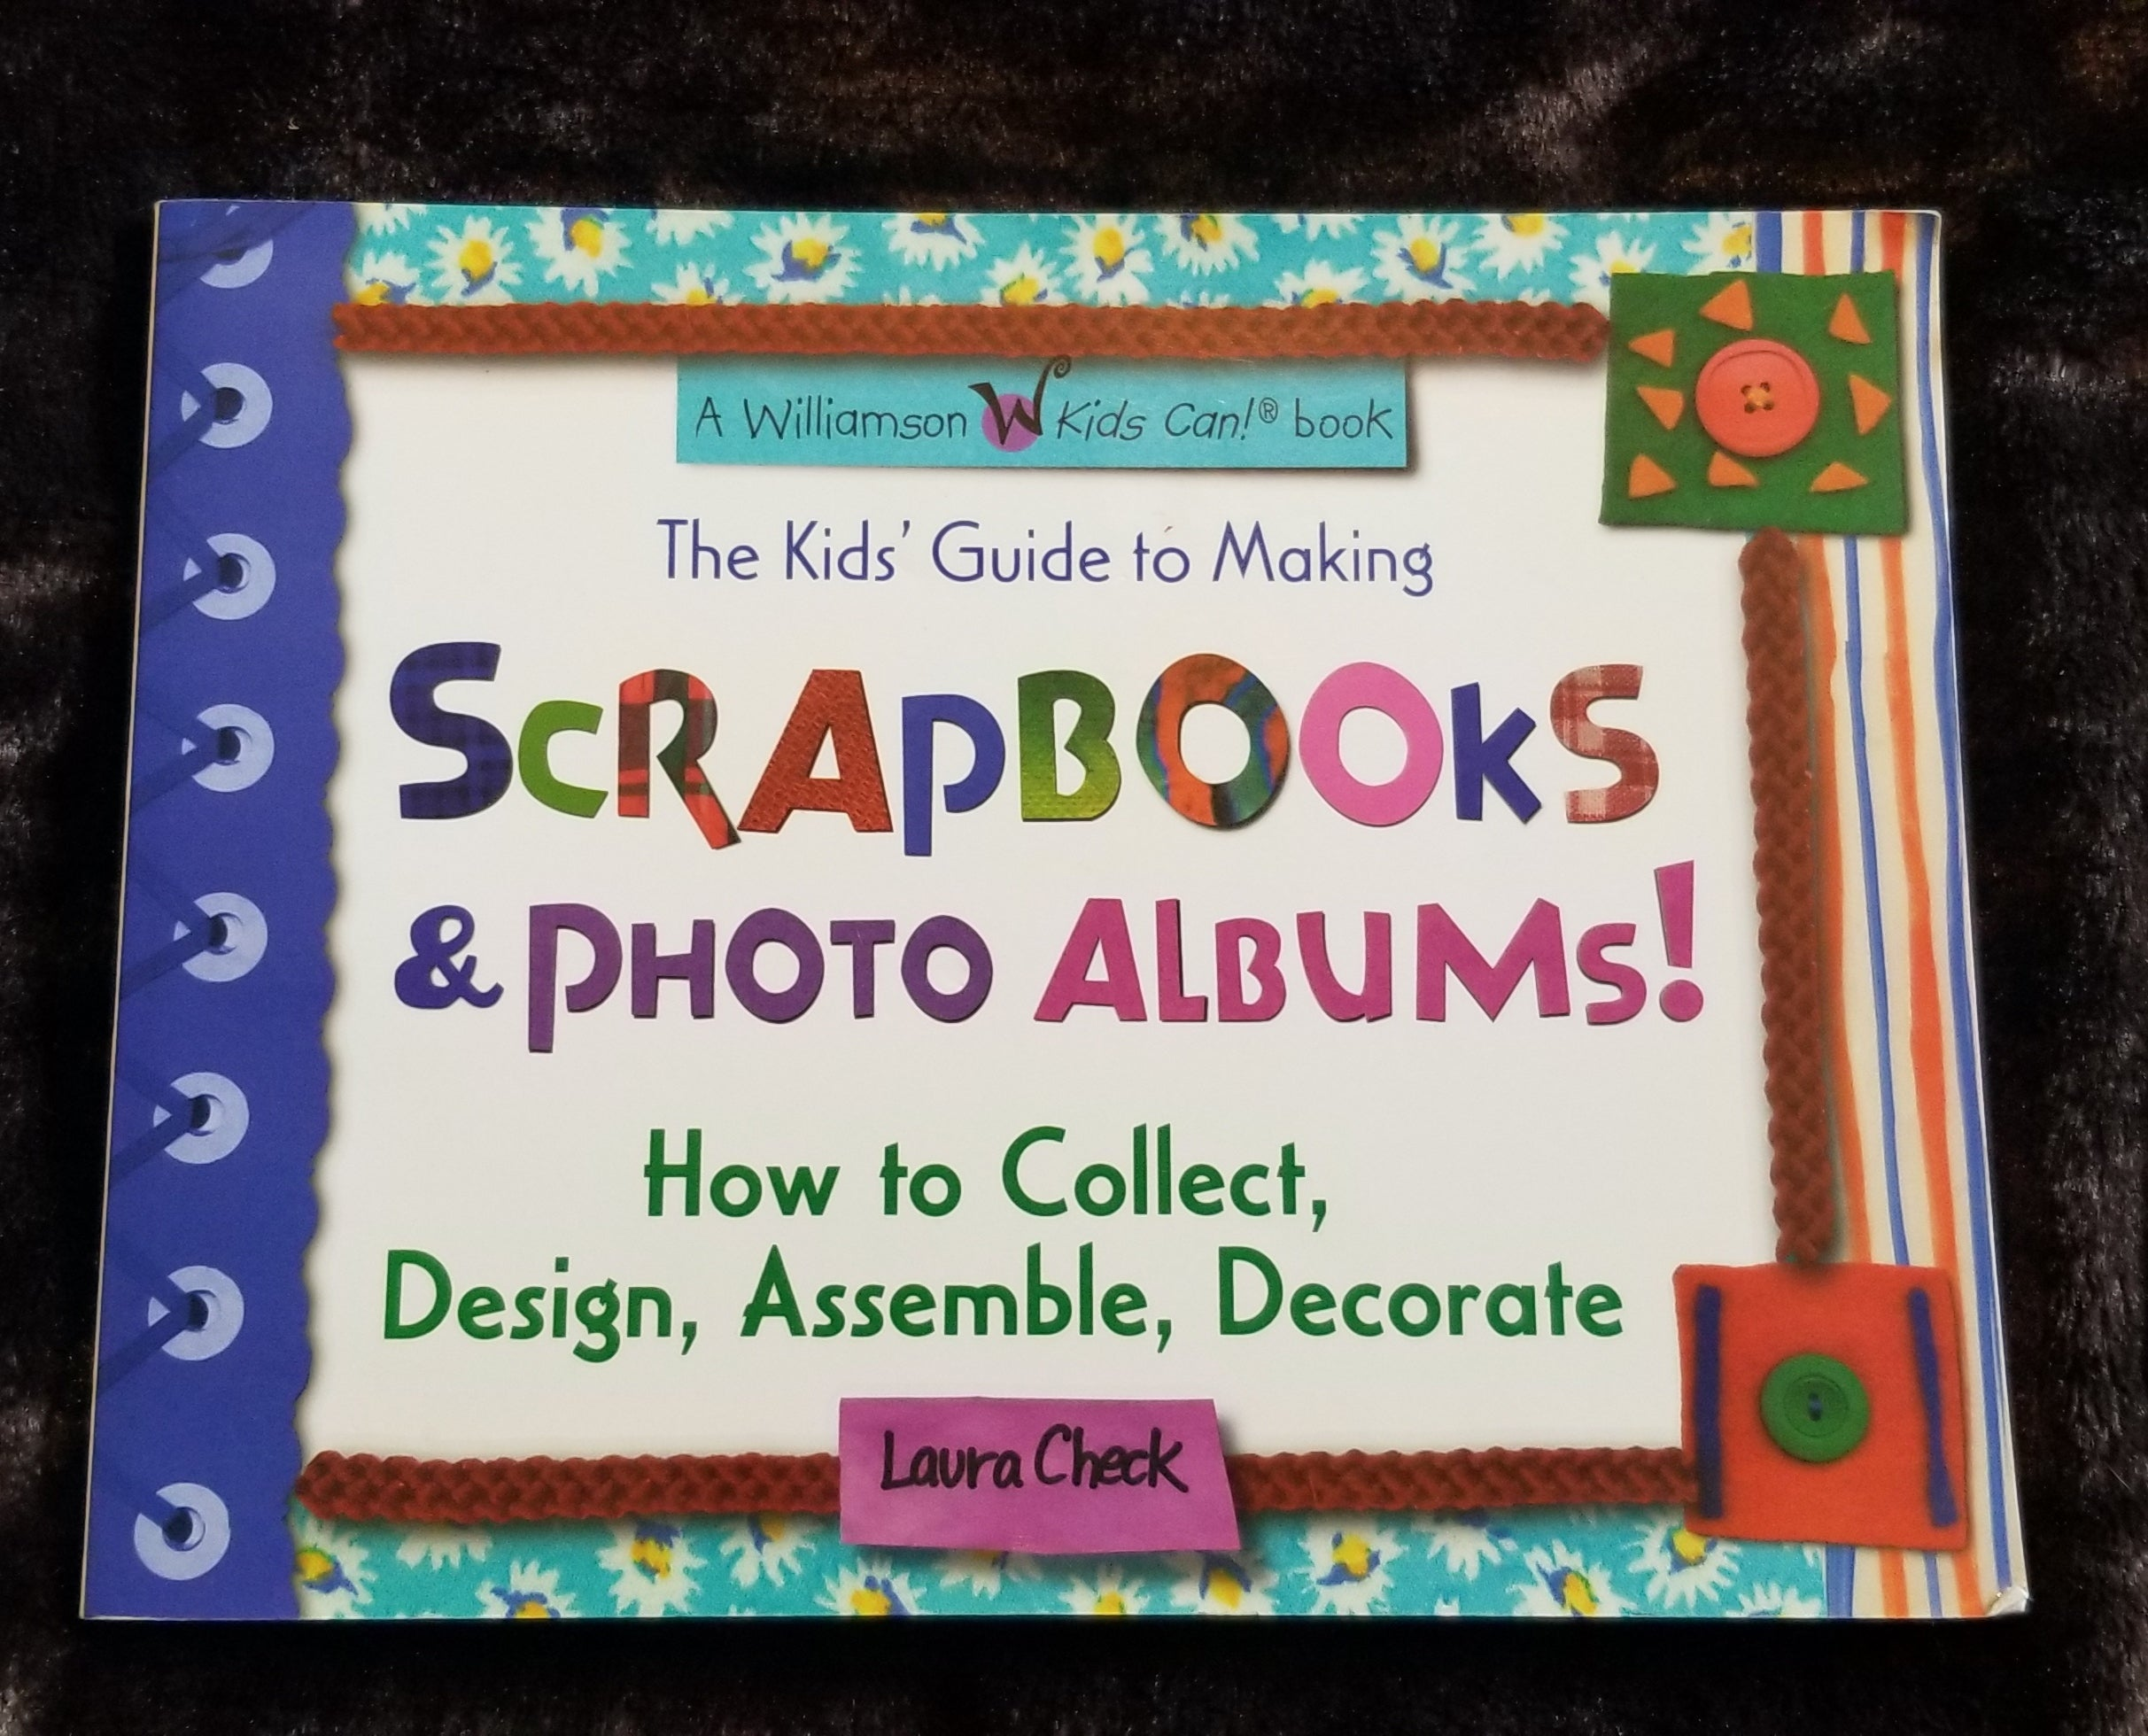 The Kids Guide to Making Scrapbooks & Photo Albums